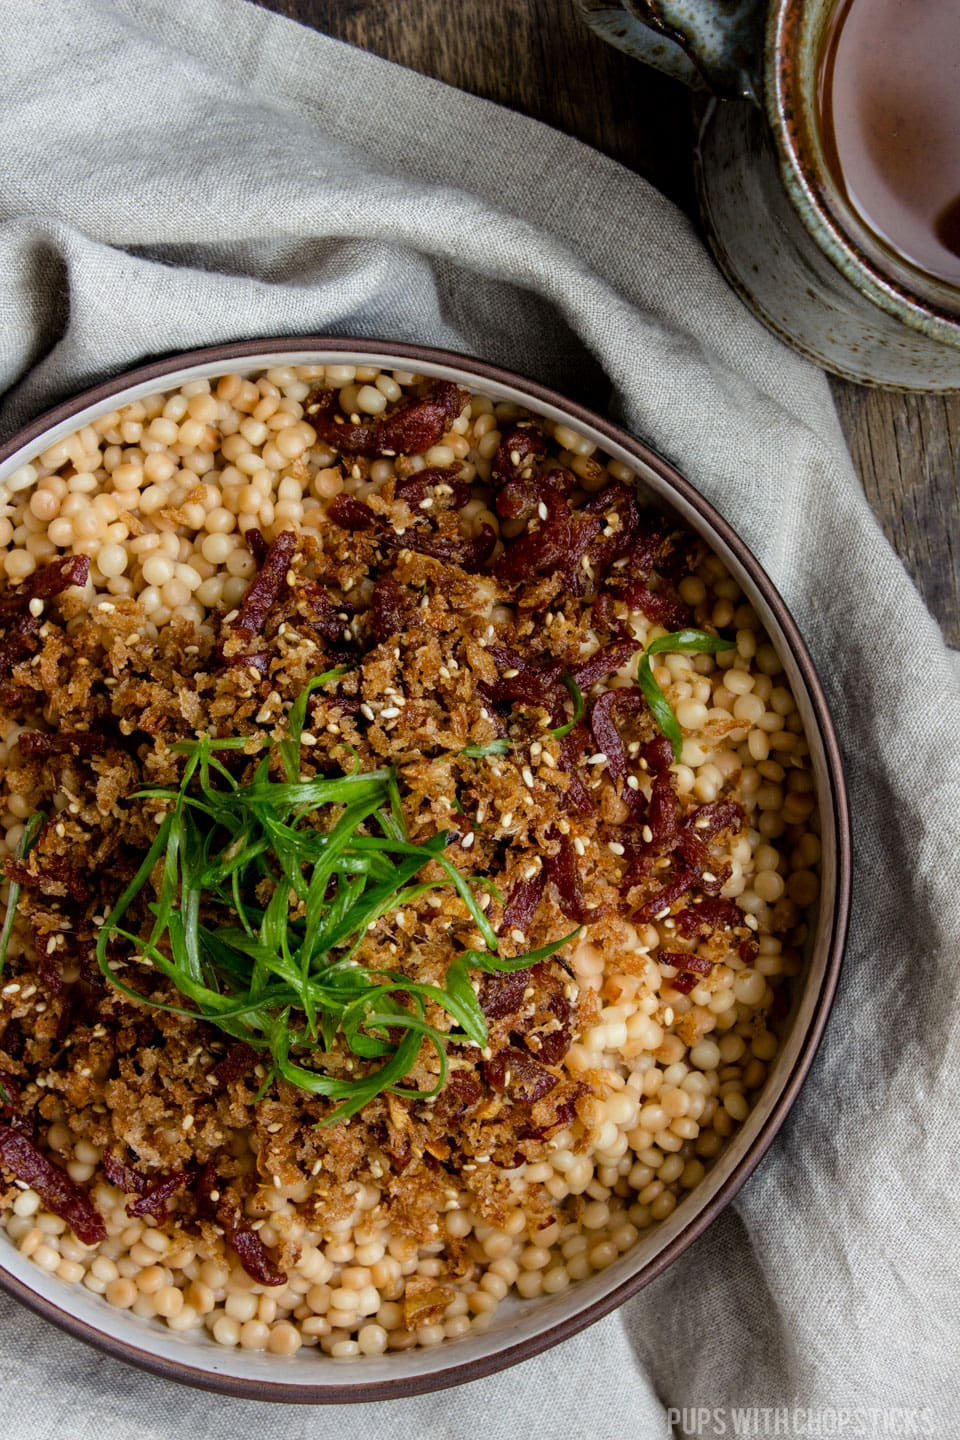 An deliciously nutty and flavourful israeli couscous recipe with a bit of a chew, generously topped with crispy garlic anchovy bread crumbs. Works great as a quick and easy side dish or a one bowl meal! #couscous #sidedish #recipe #salad #crispy